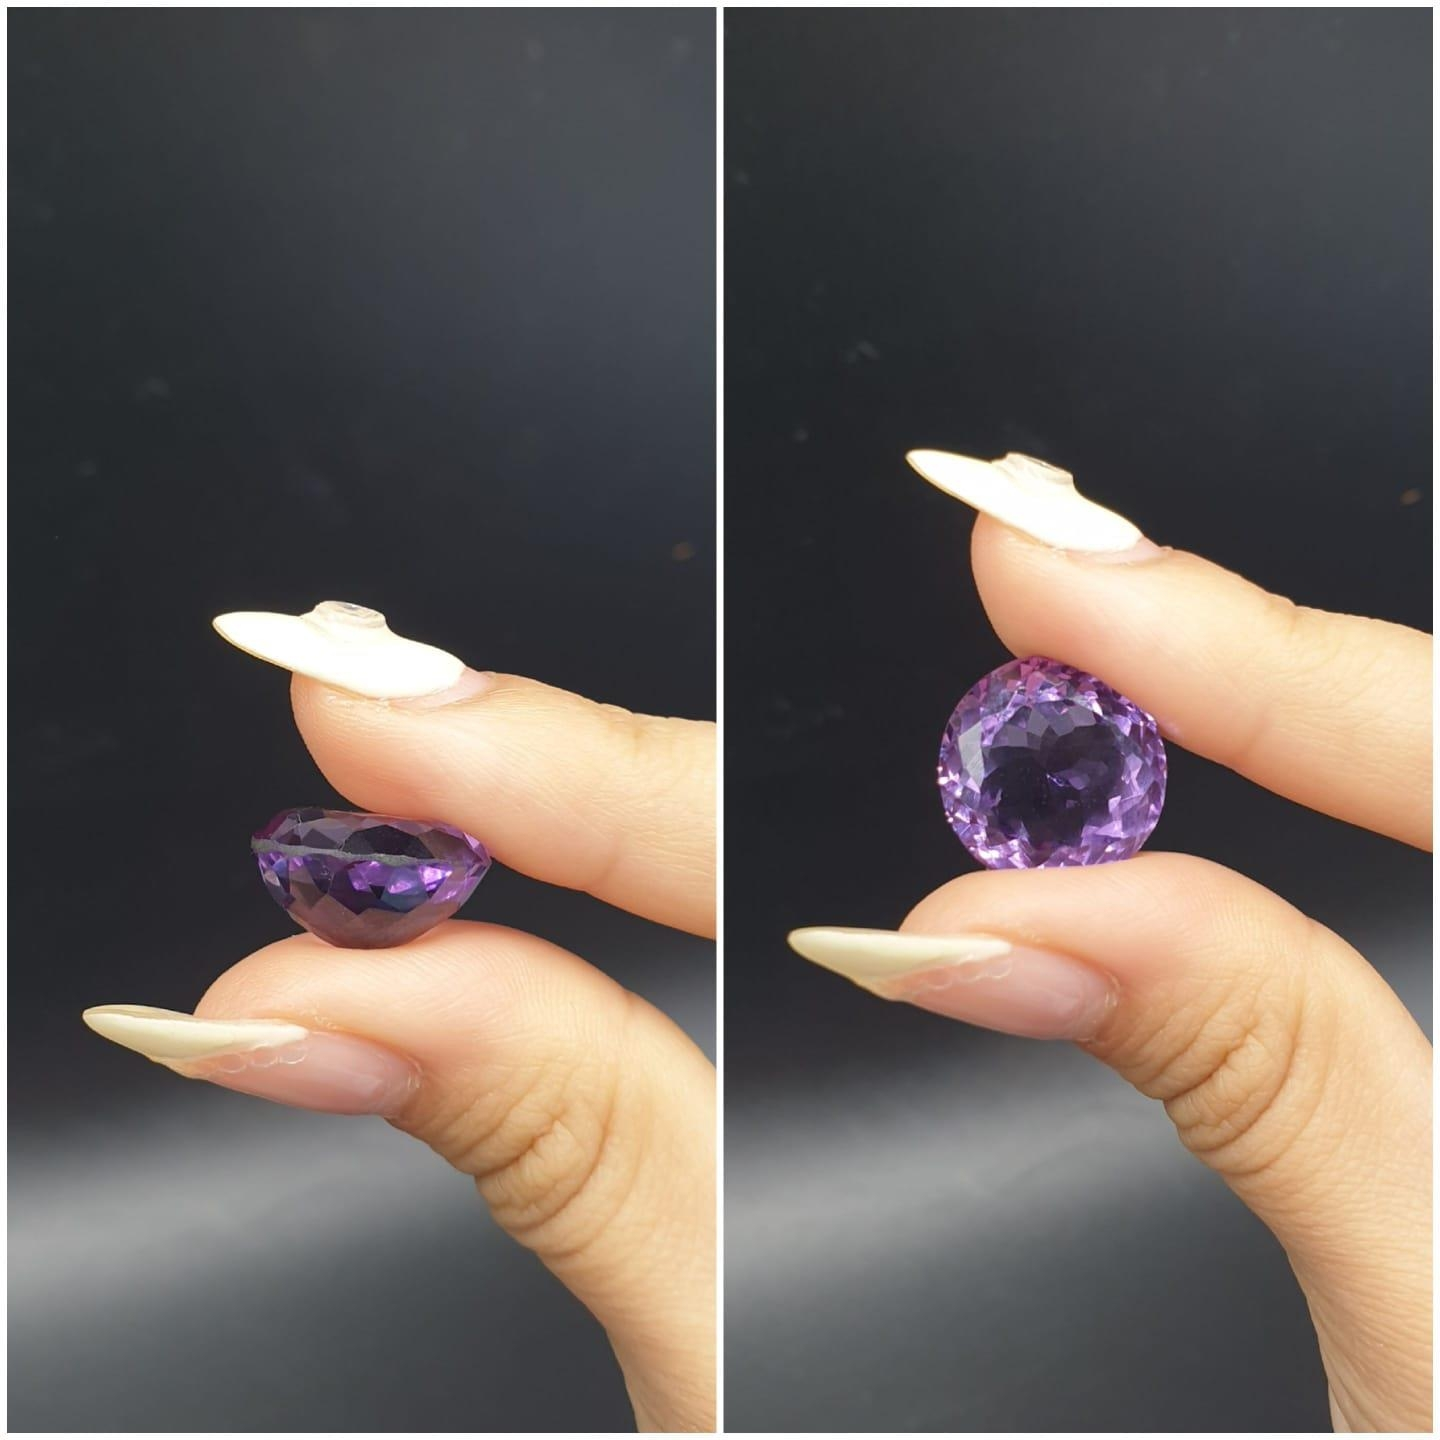 14.93 Ct Amethyst. Round shape. IDT certified - Image 4 of 5